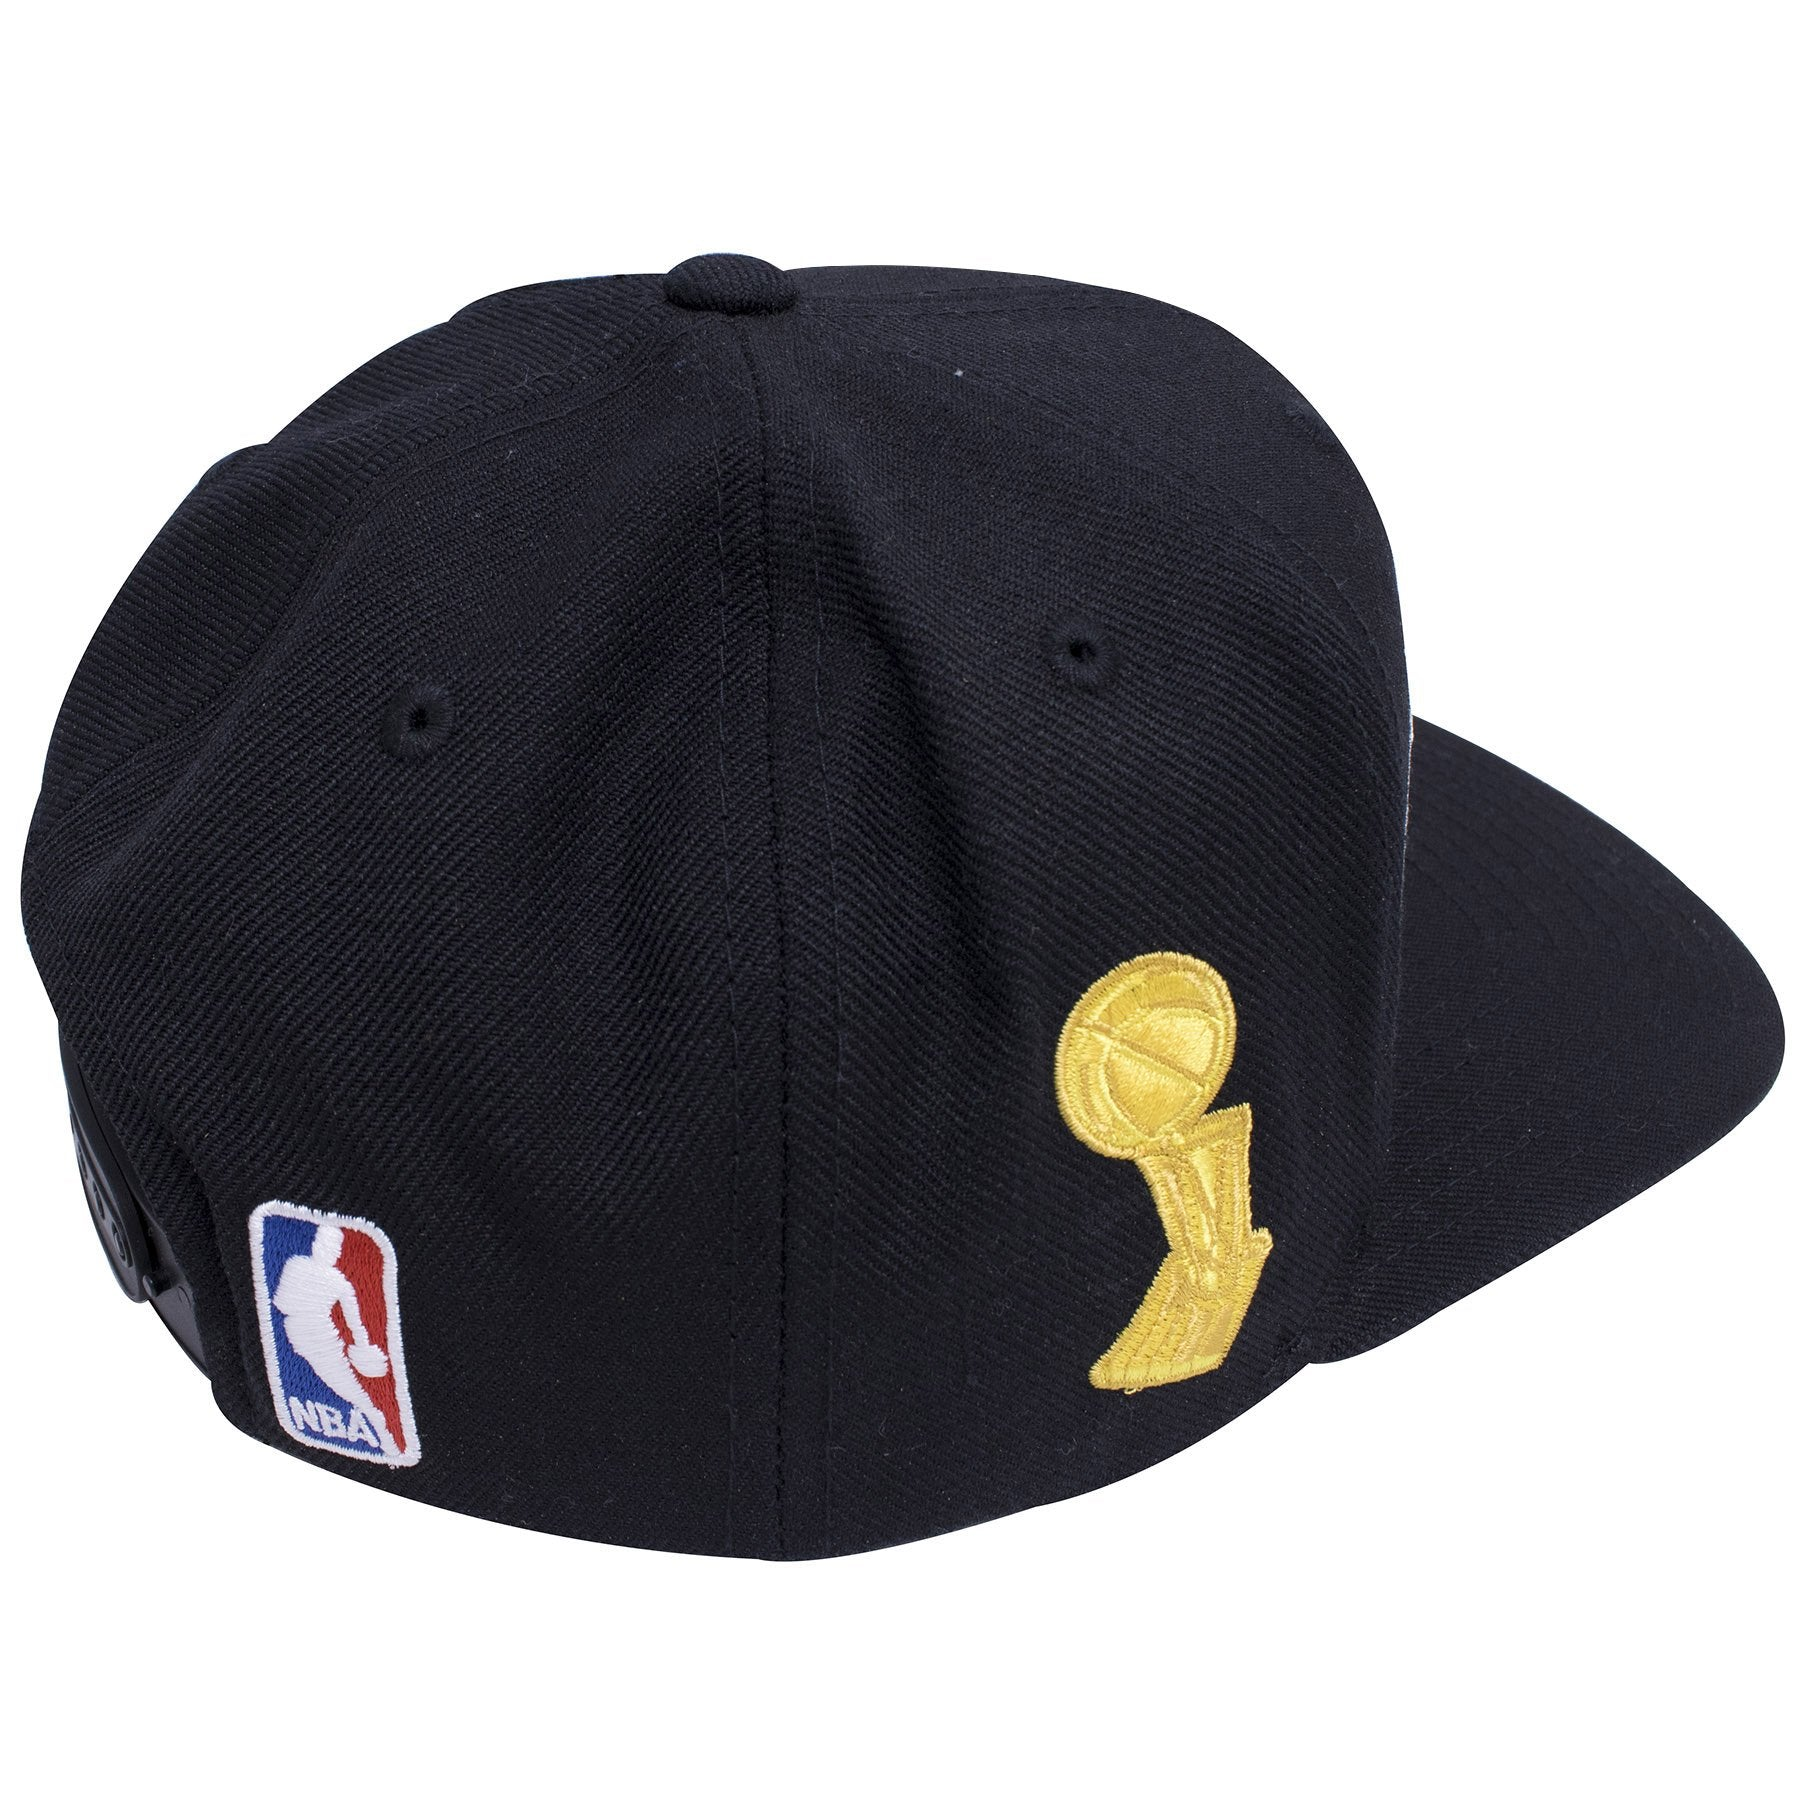 064055c84d8e8 ... on the back of the cleveland cavaliers 2016 nba champions snapback hat  is a white